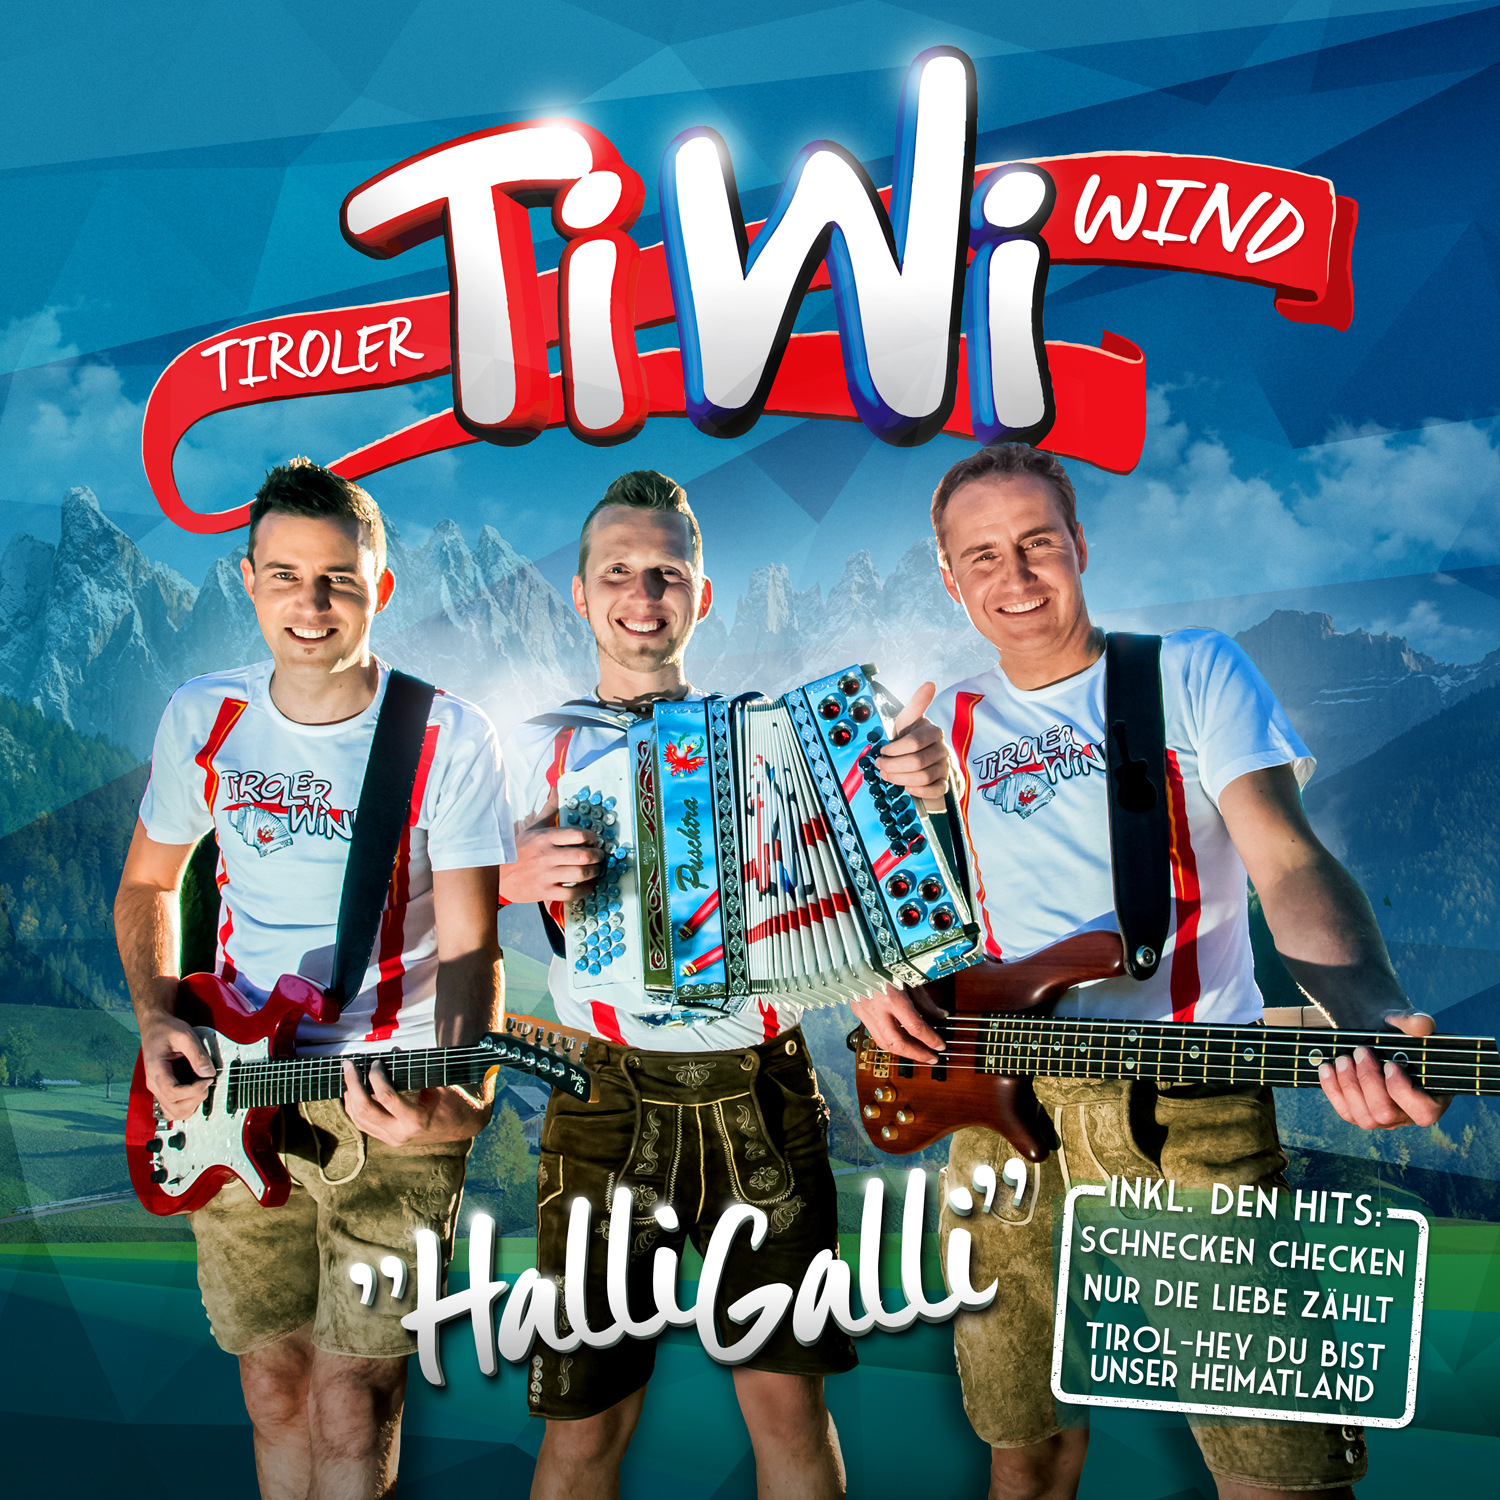 Tiroler Wind - TiWi | Halli Galli